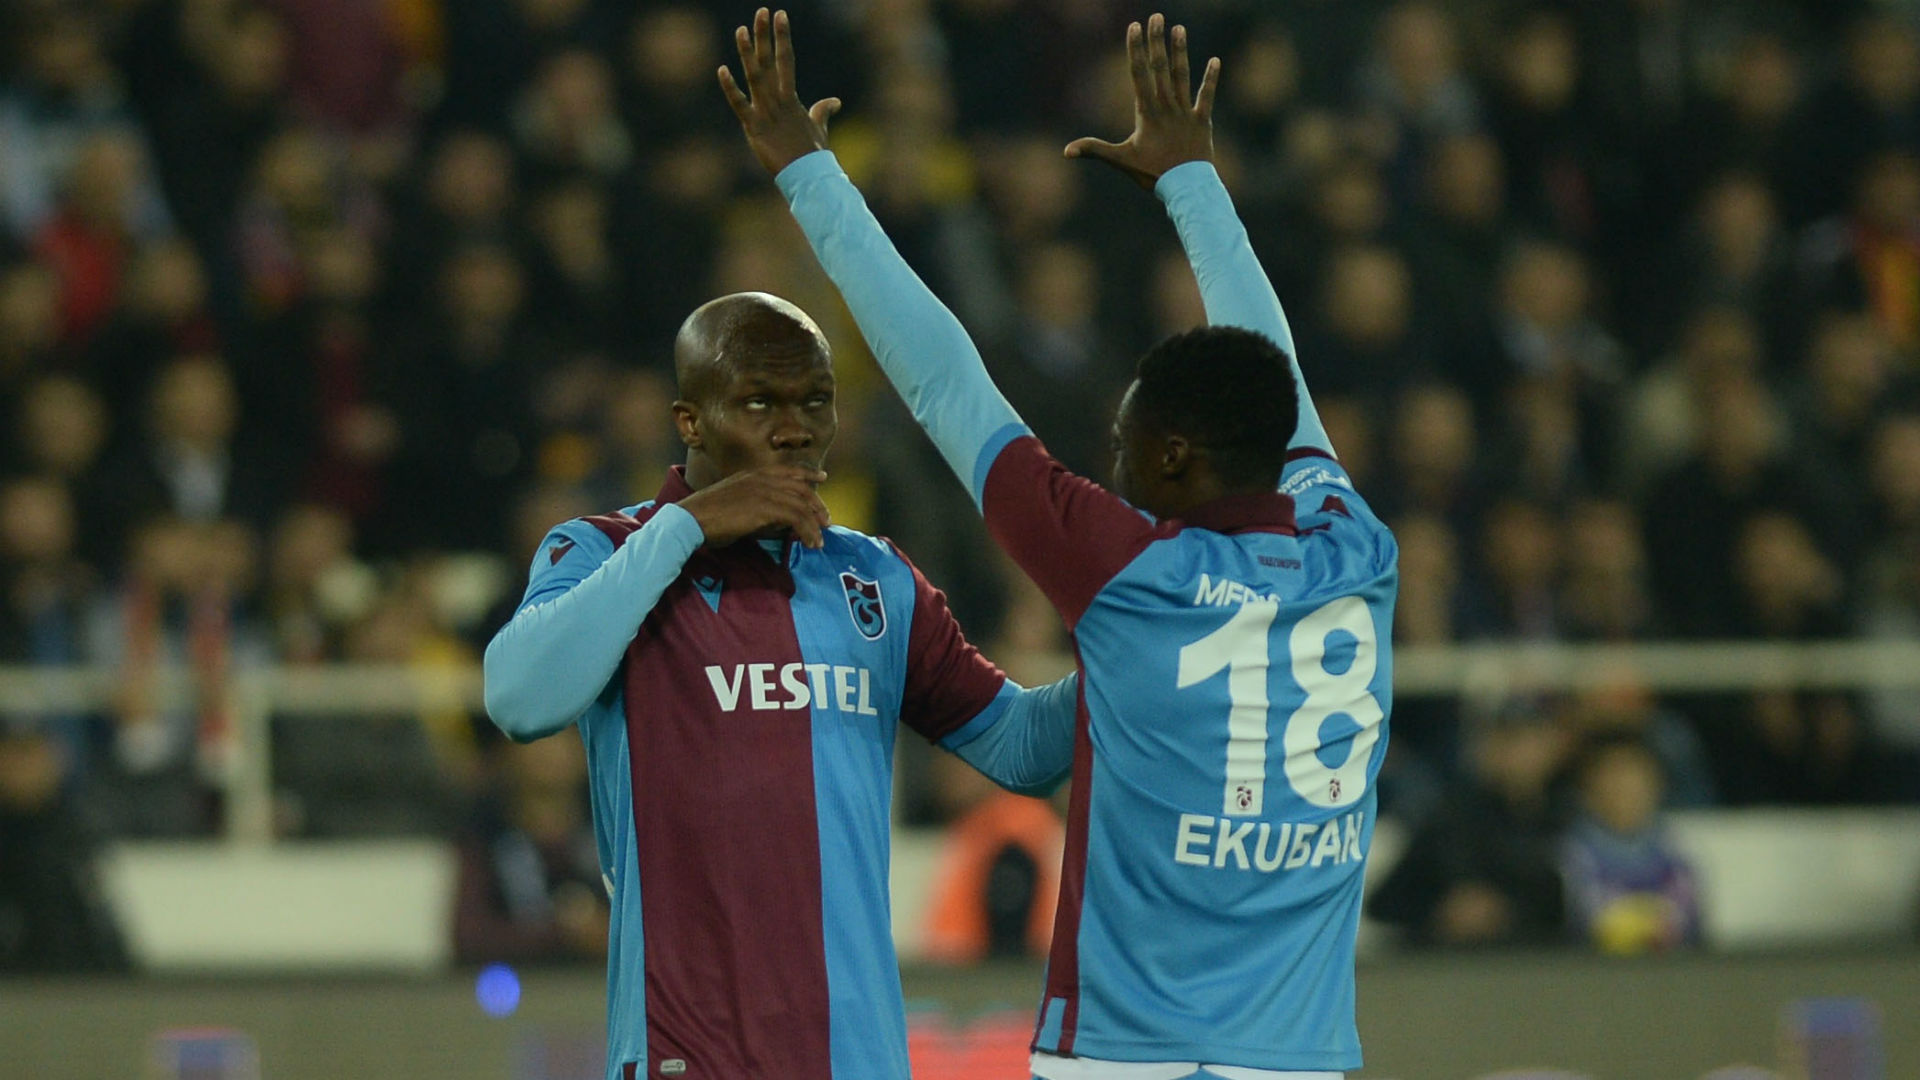 Nwakaeme nets, Ekuban assists in seven-goal thriller between Trabzonspor and Rizespor